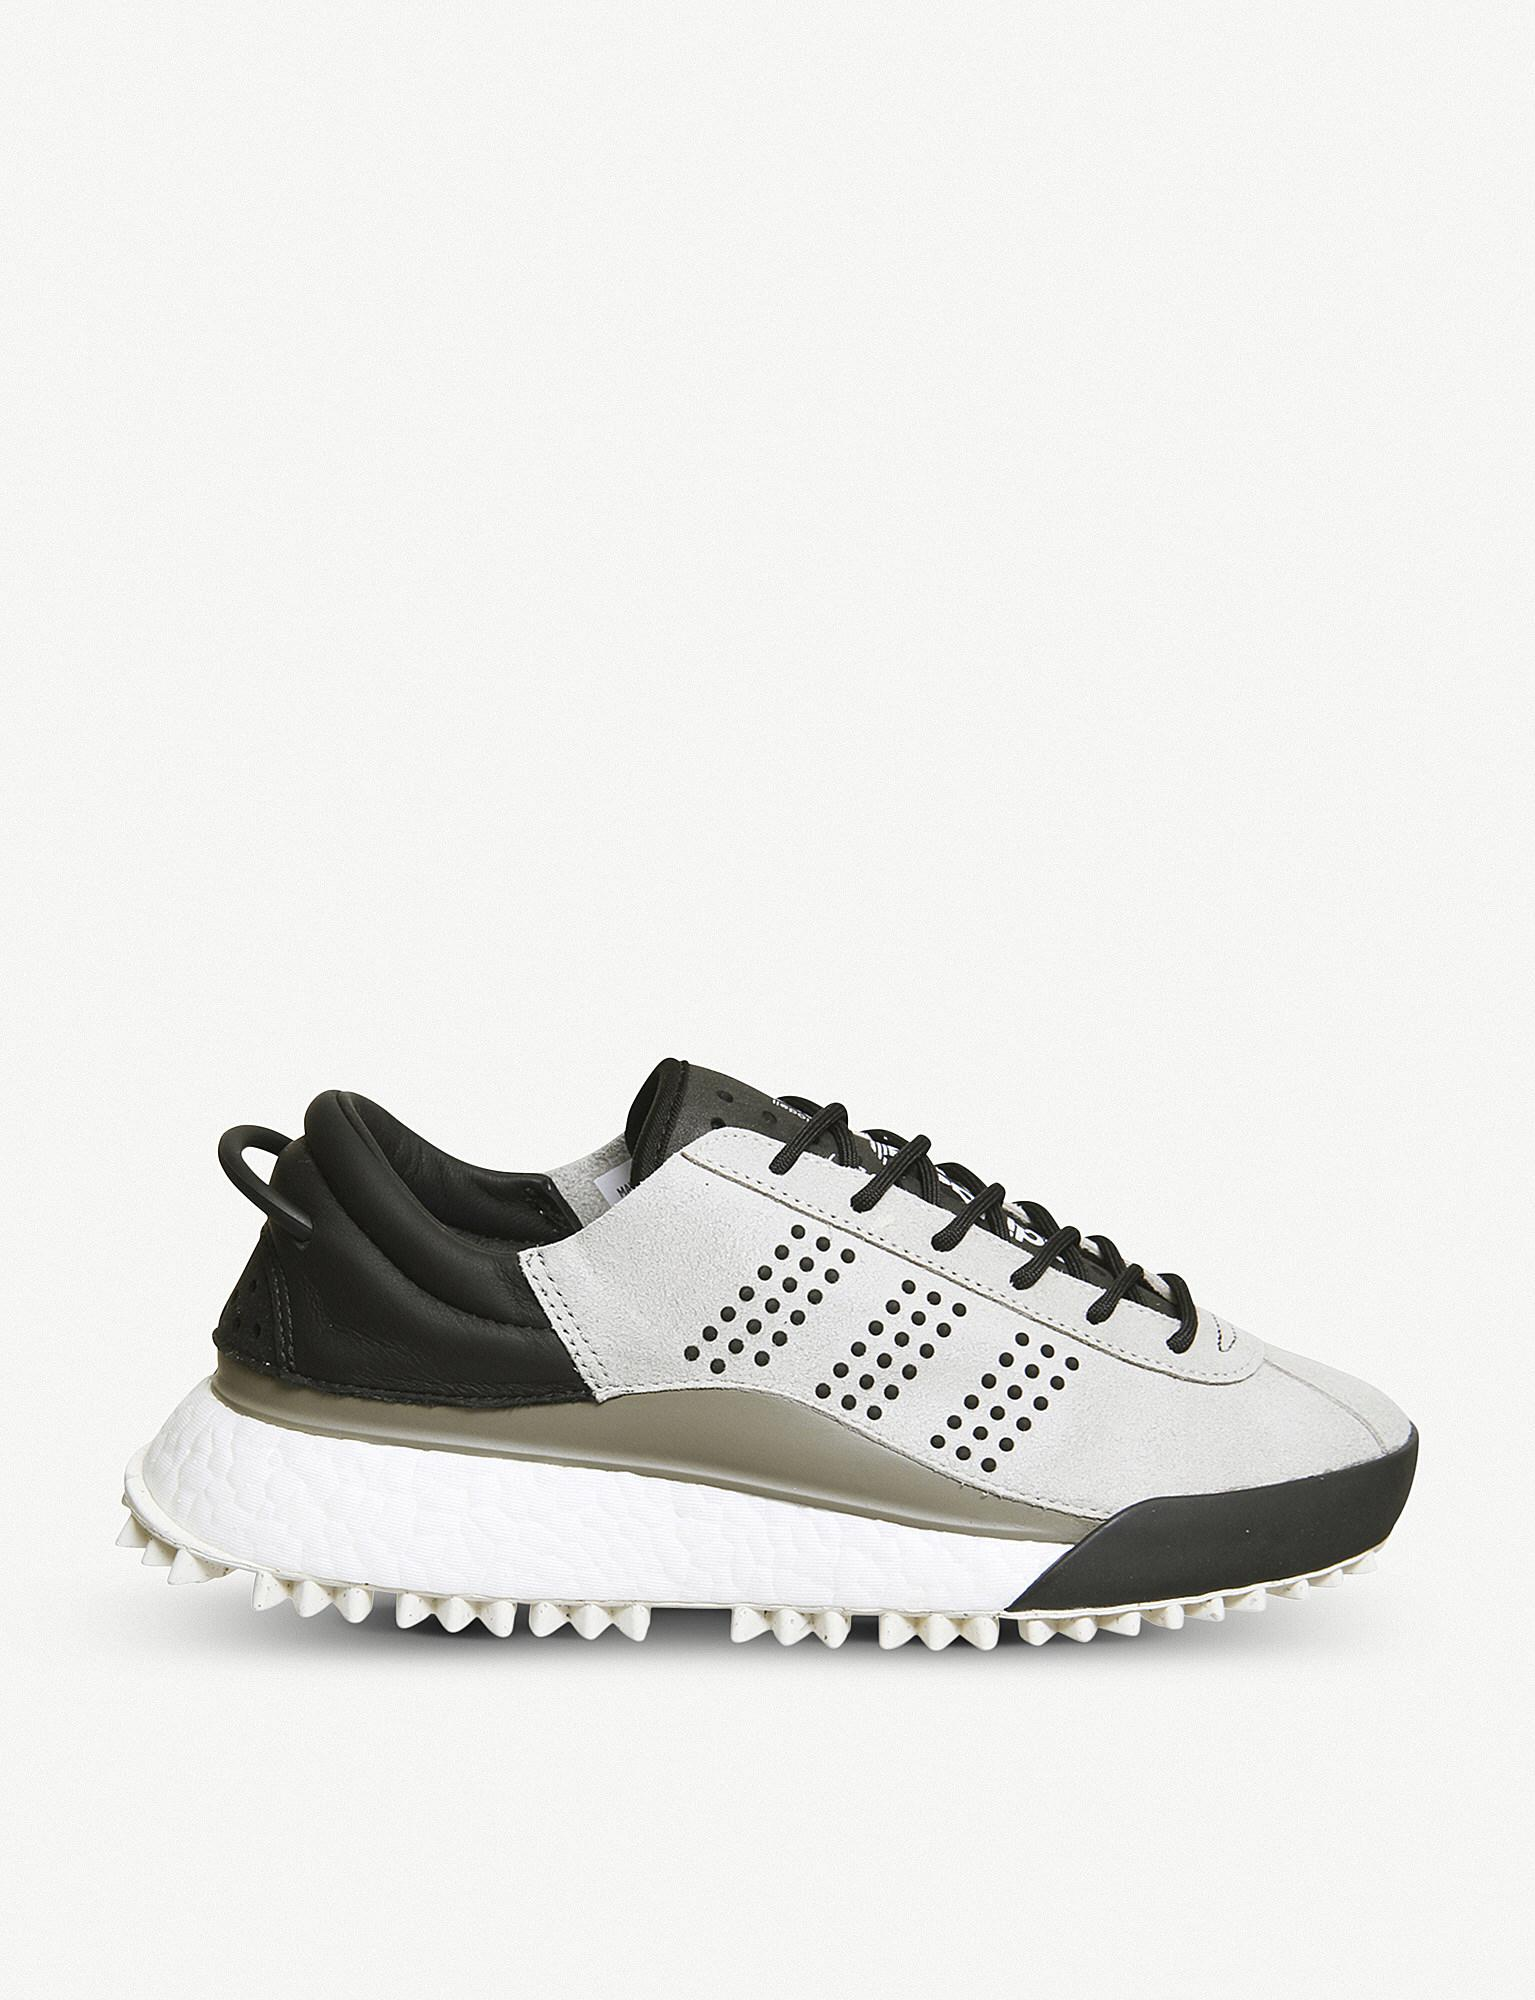 lyst adidas aw hike low boost textile and rubber low top